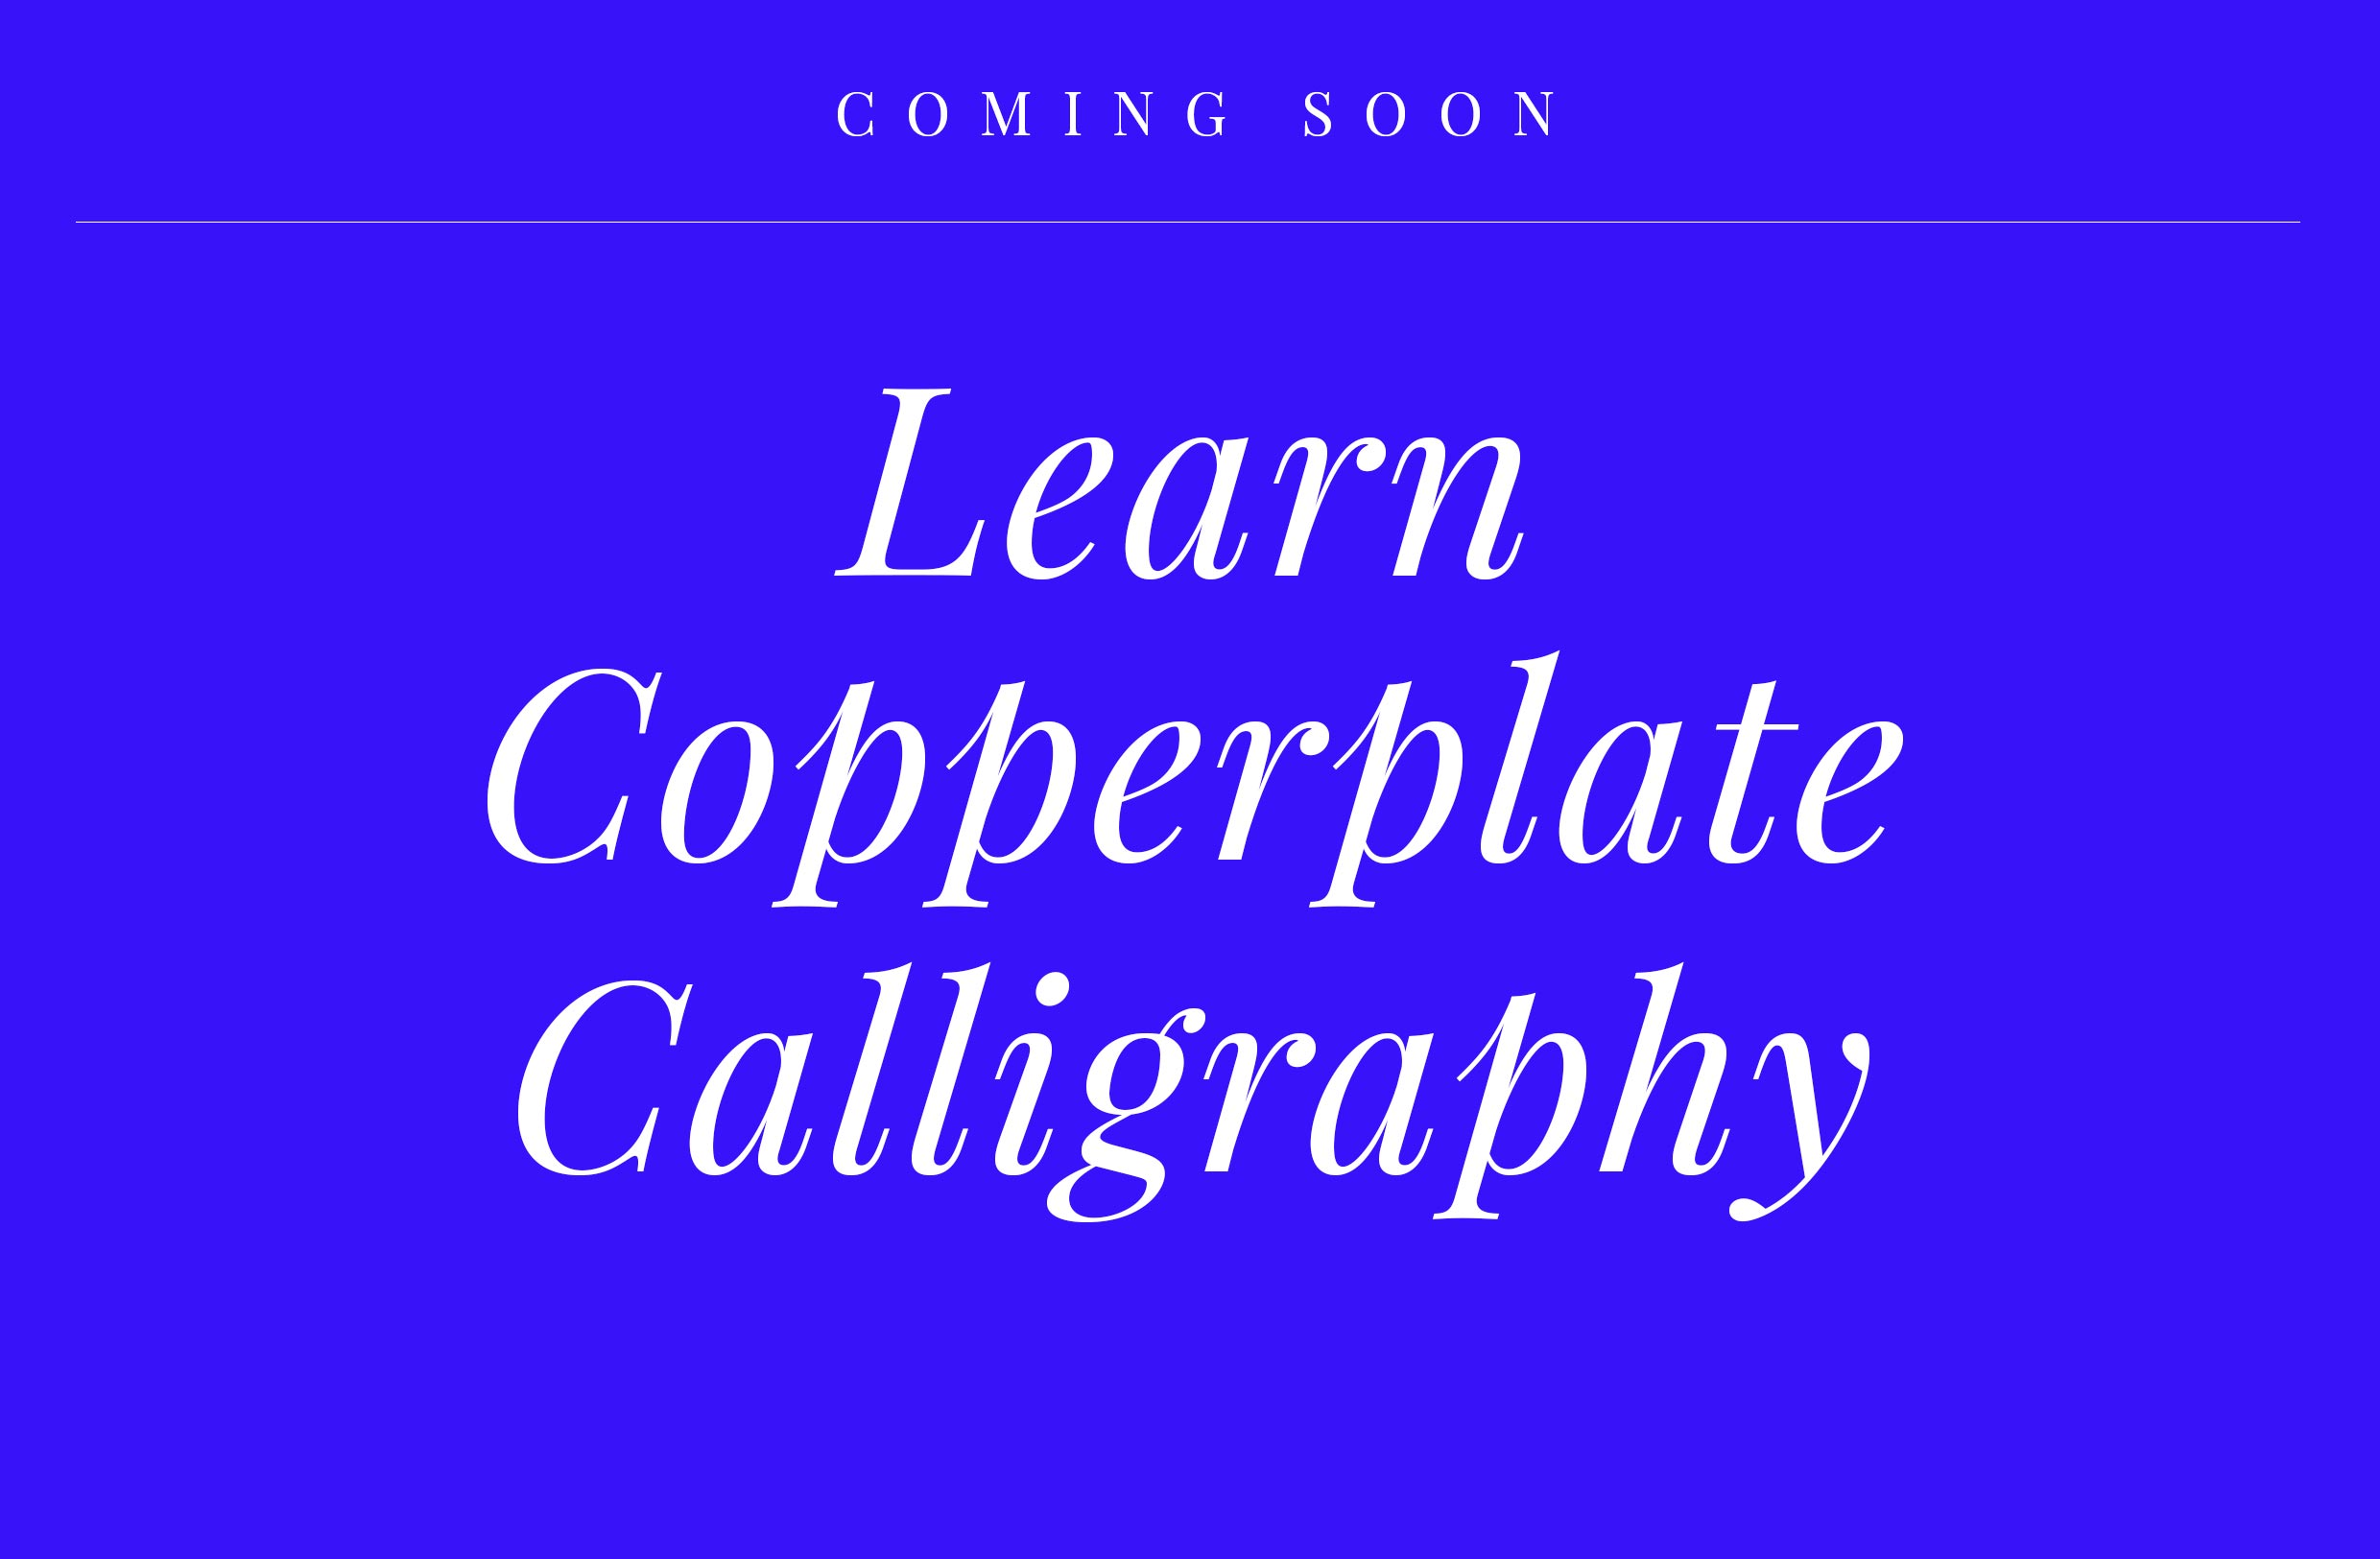 Learn-Copperplate-Calligraphy.jpg